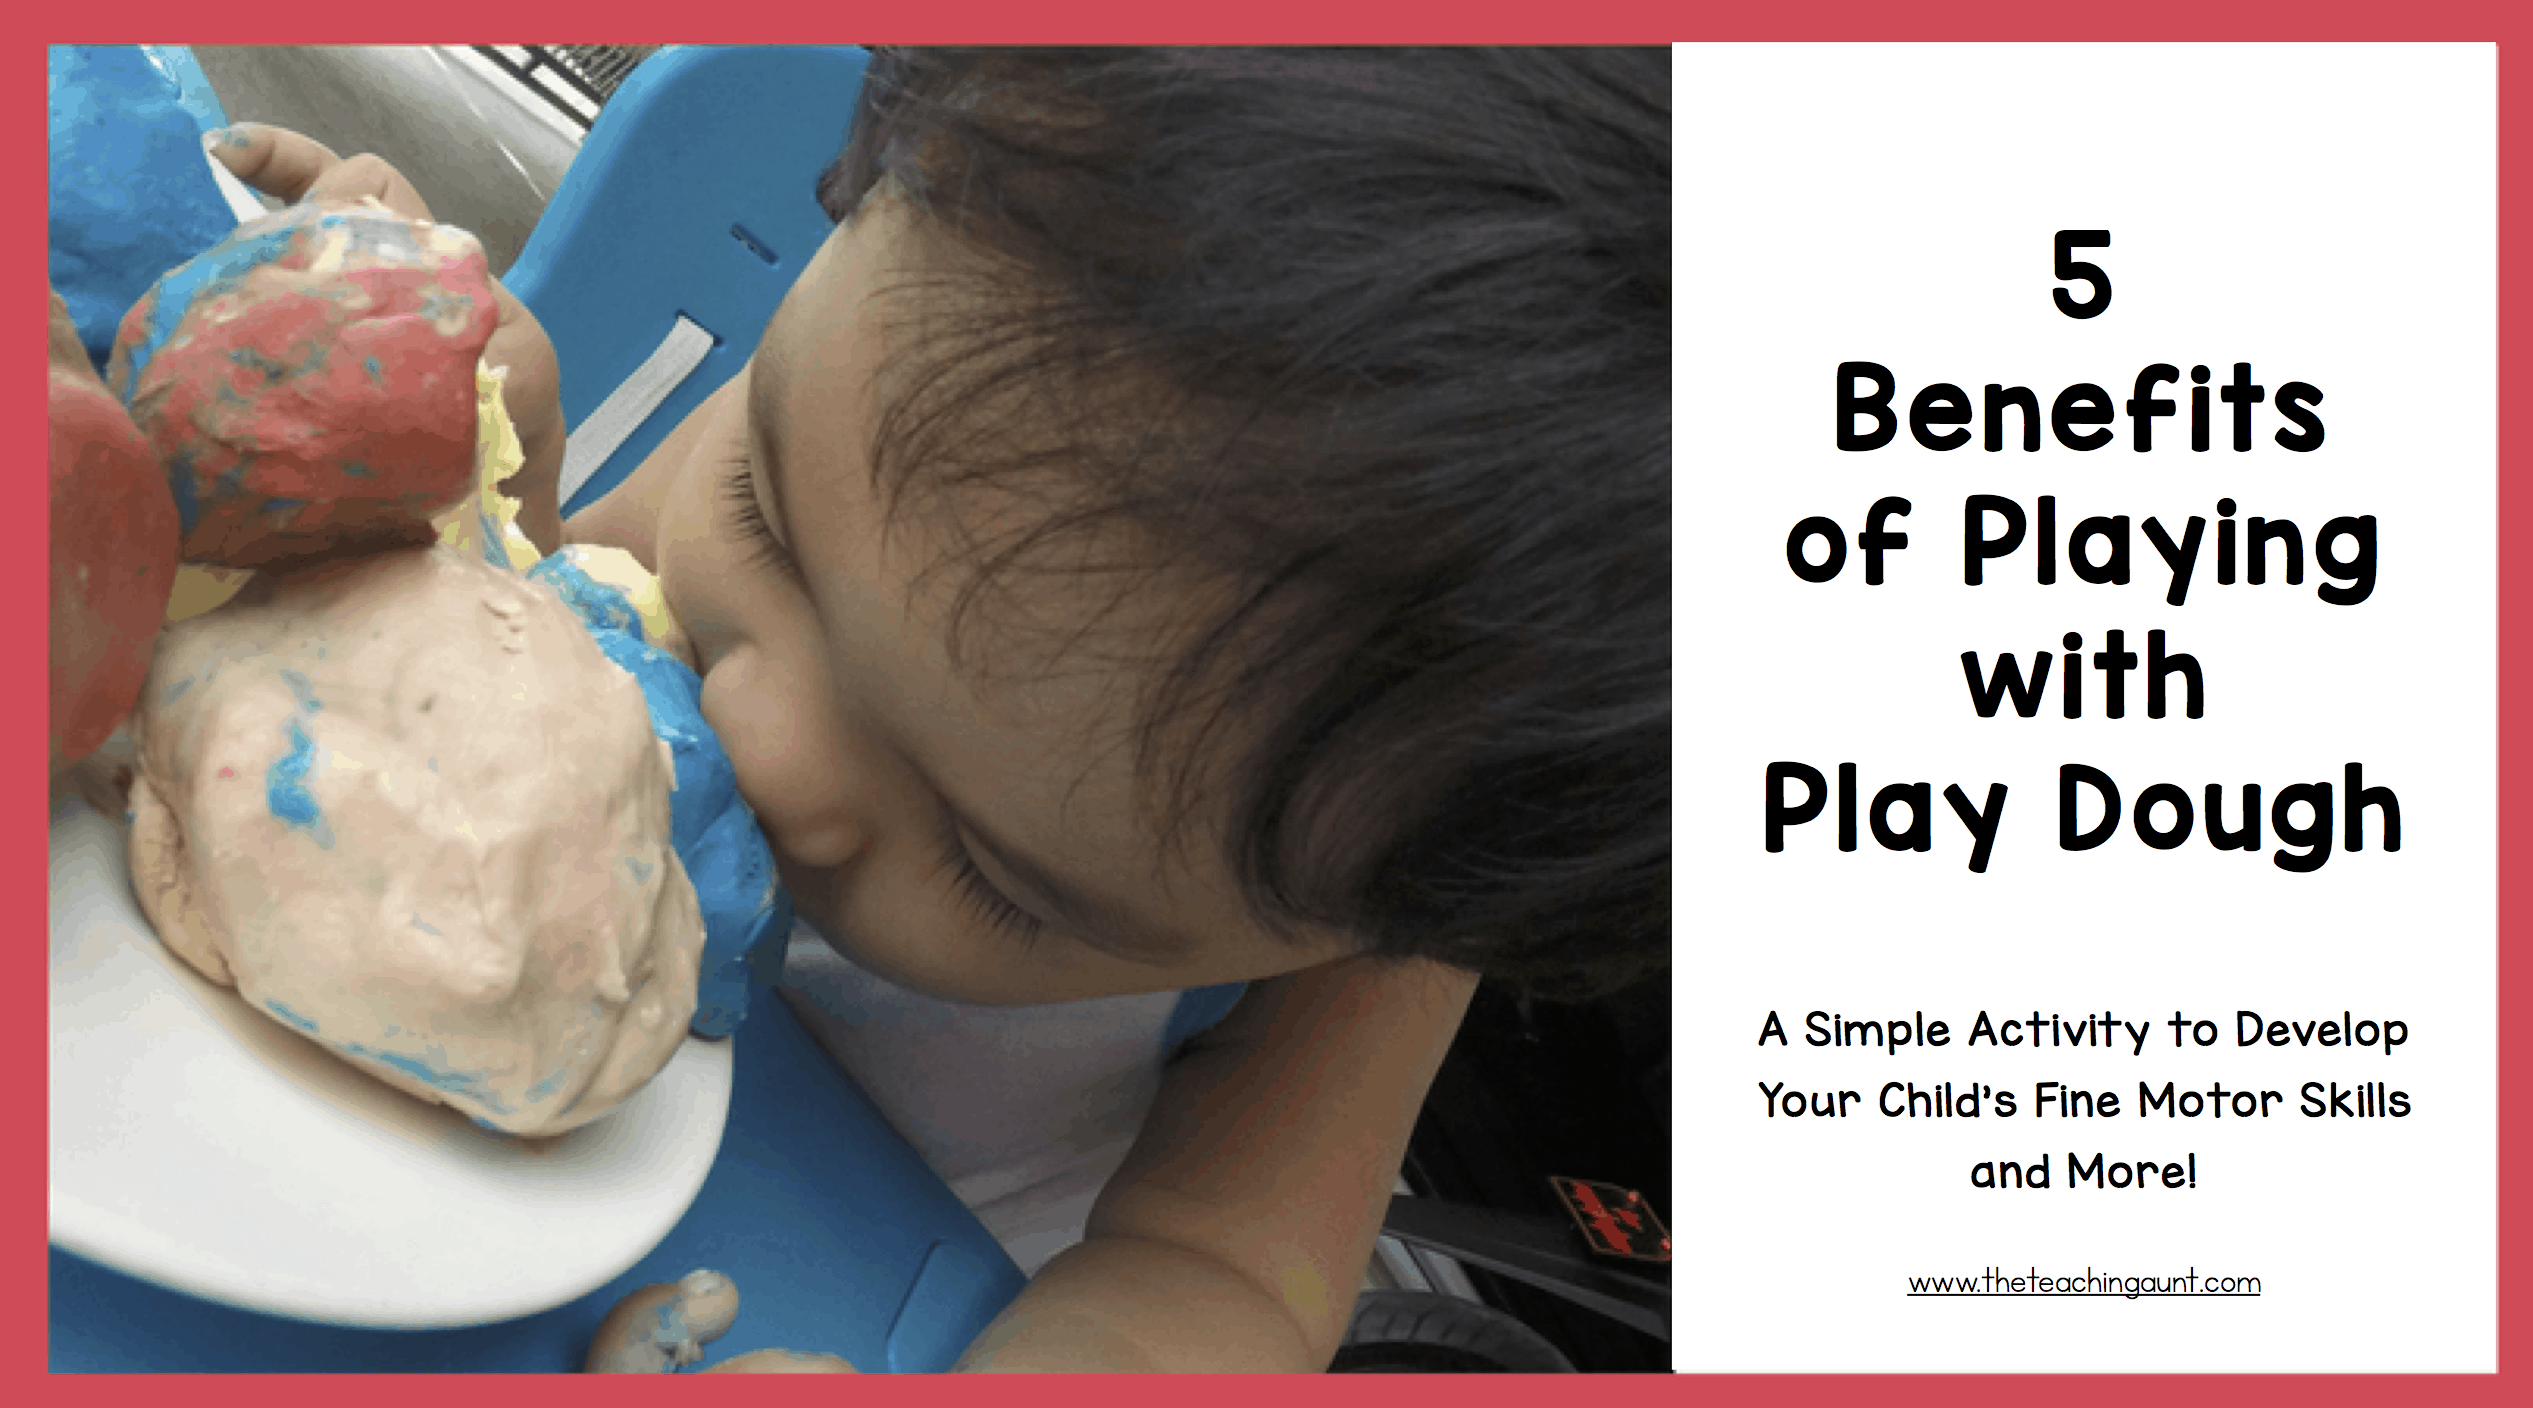 5 Benefits of Play Dough: A Simple Activity to Develop Your Child's Fine Motor Skills